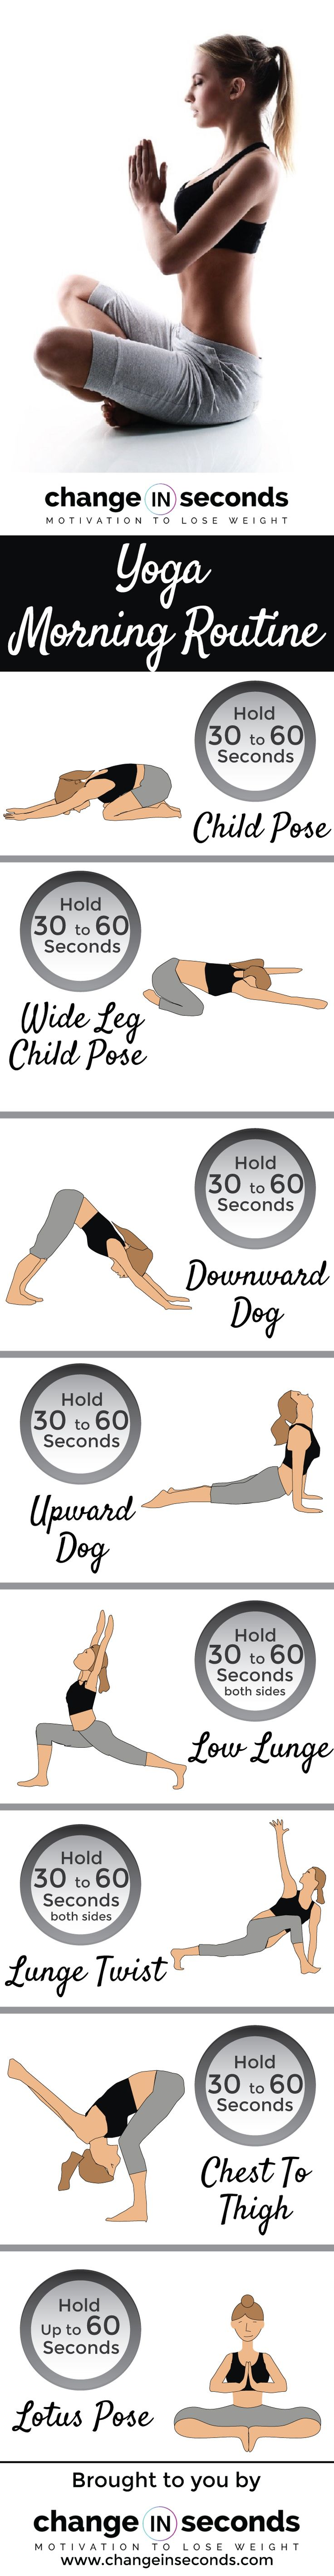 Yoga Poses Workouts For Beginners Yoga Morning Routine Download Pdf Www Changeinsecon Fitnessviral Magazine Your Number One Source For Daily Health And Fitness Motivation